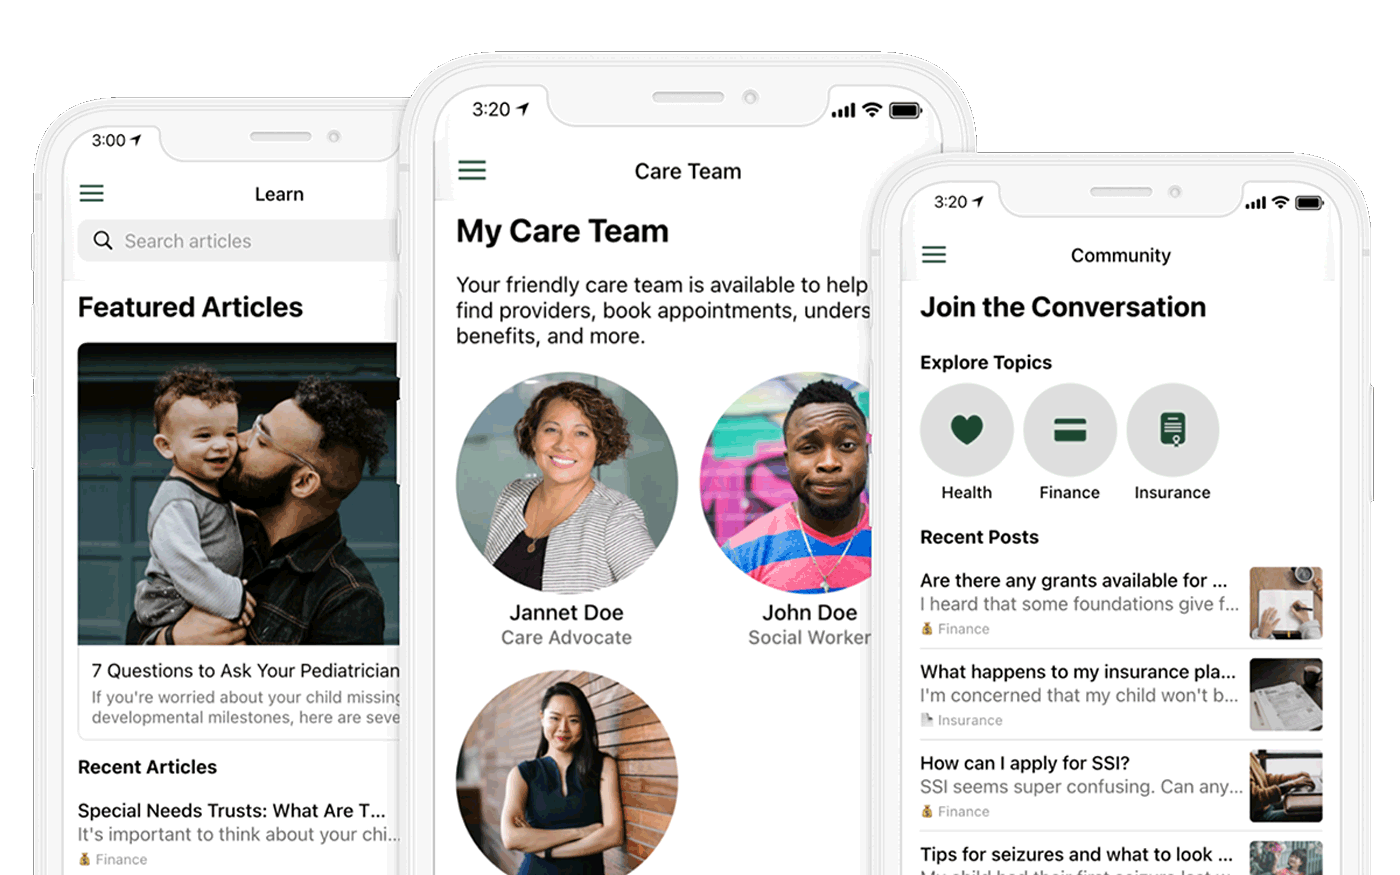 Three screenshots of Wayfinder's mobile app, which features on-demand care coordination services, a library of content, and a peer support community.